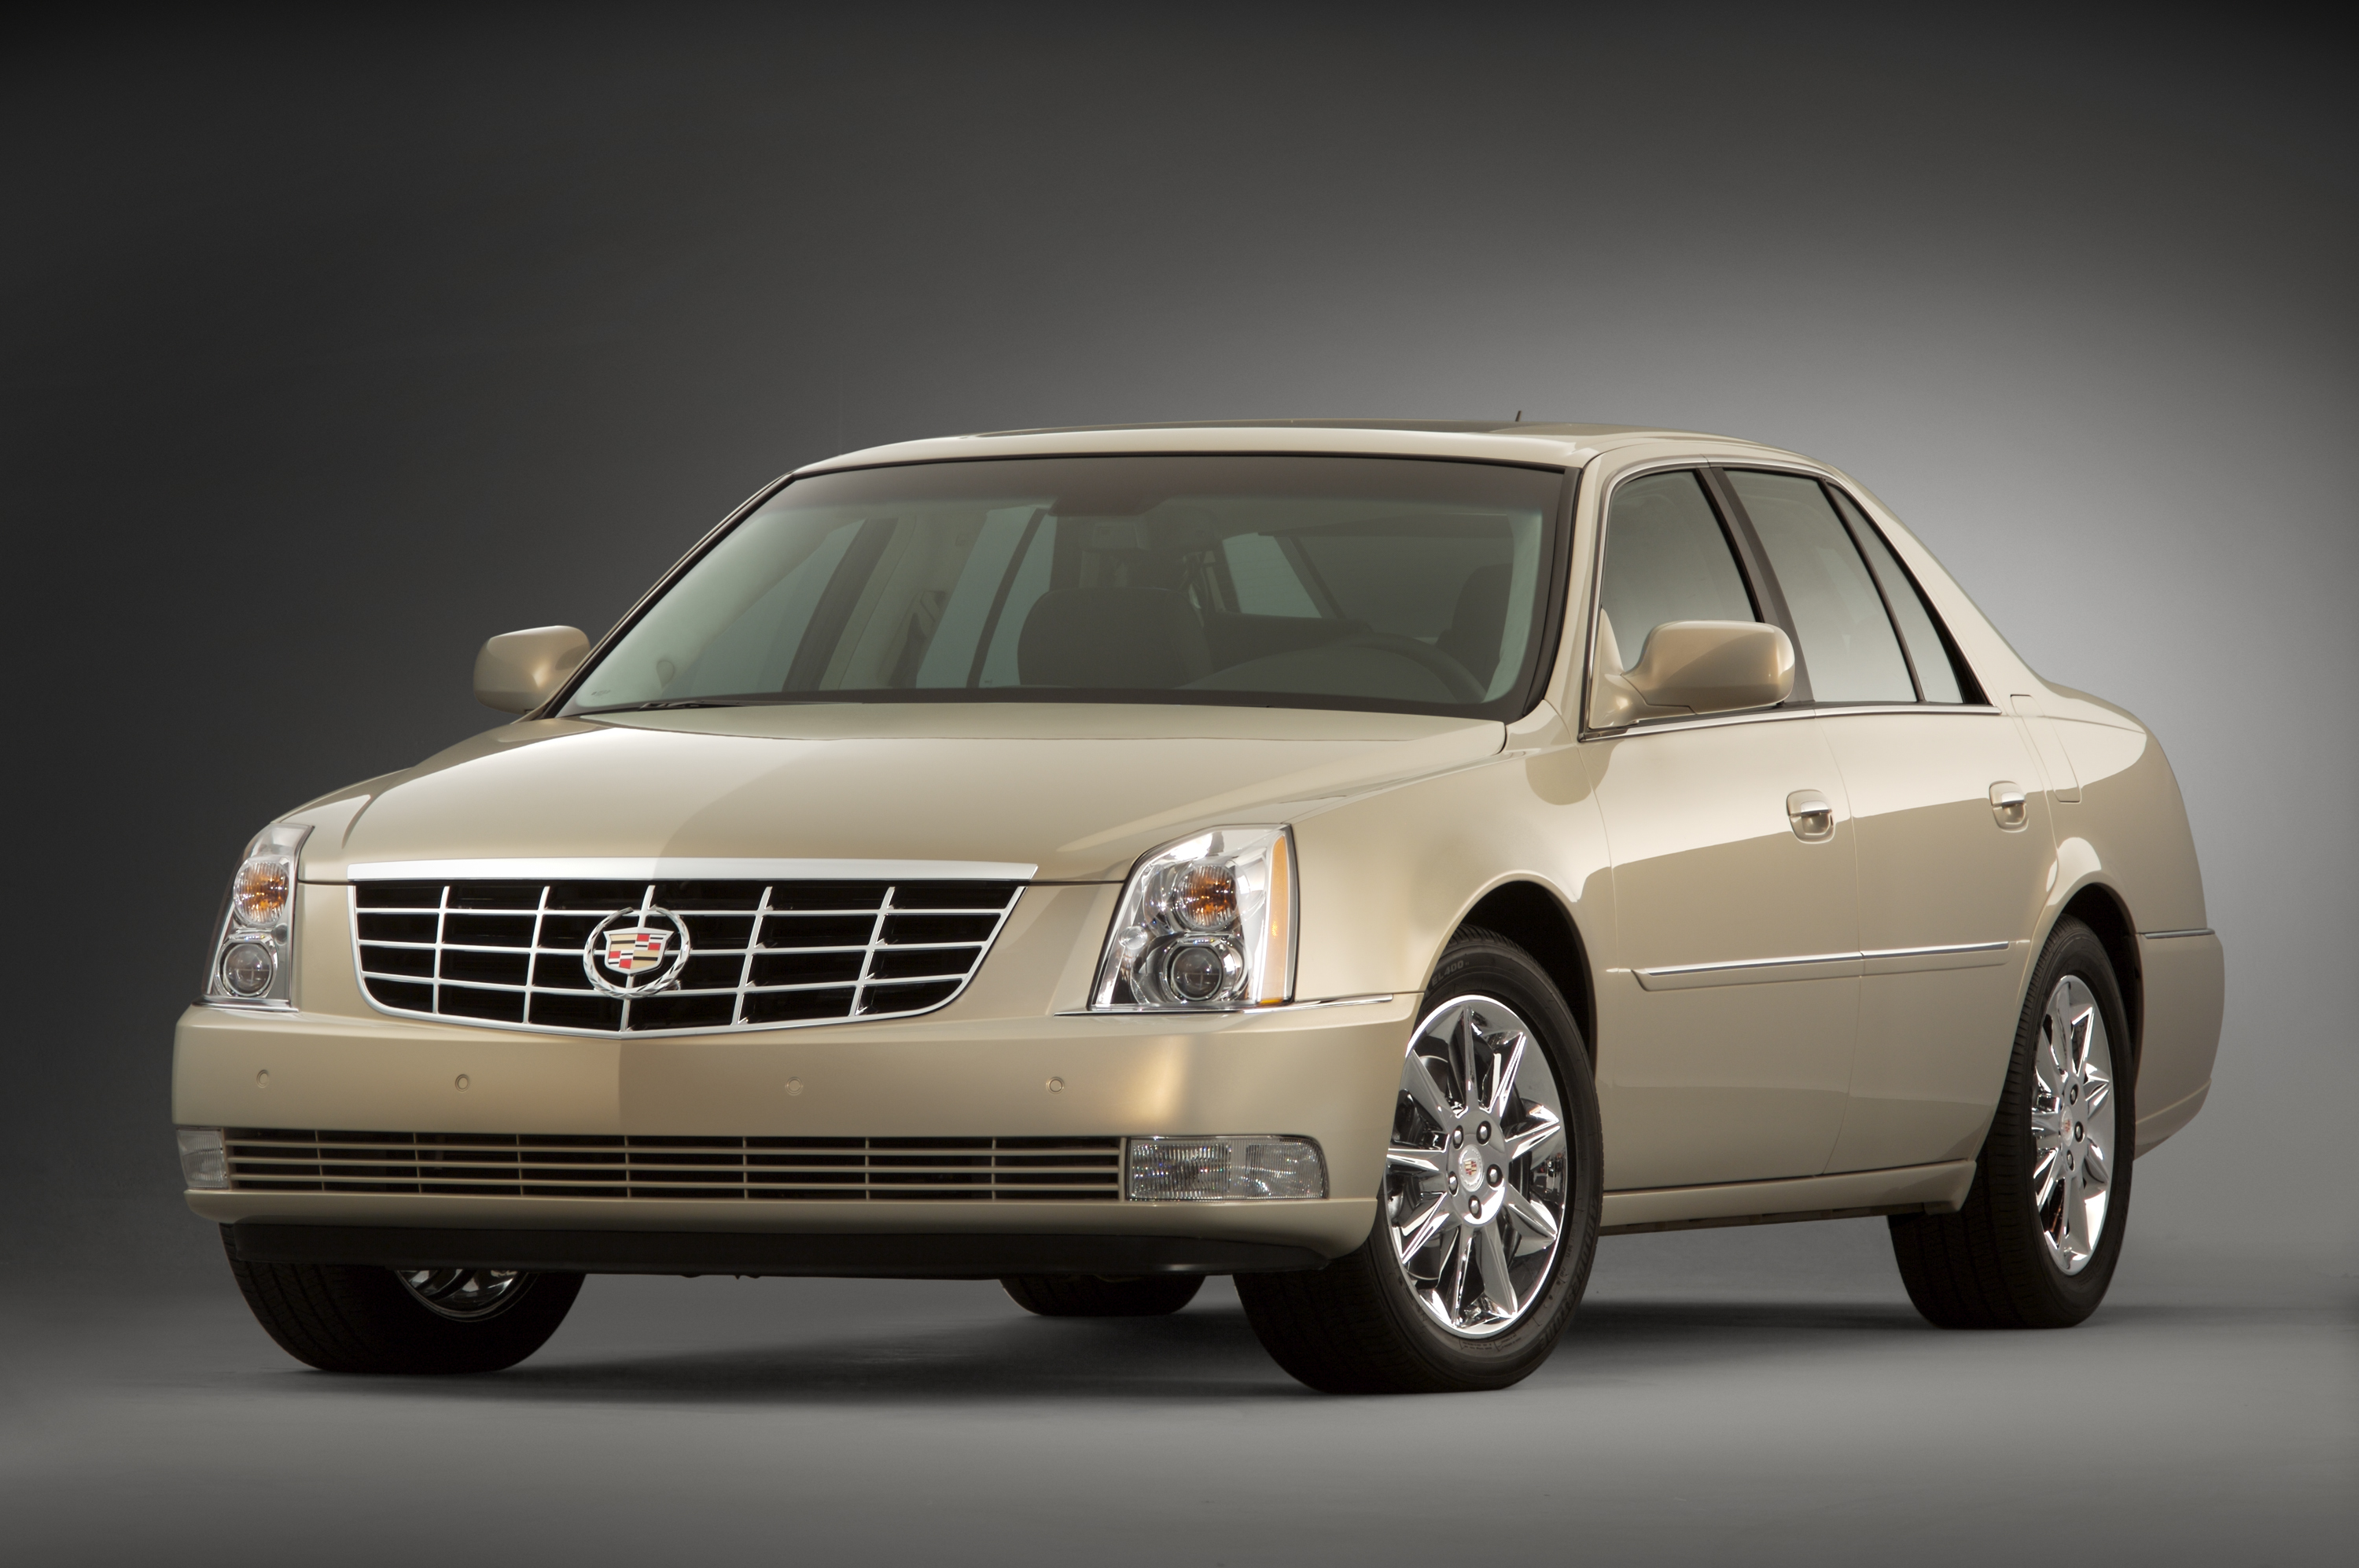 techsavvymama luxurious review eye crossover srx an cadillac detail with tech com for suv